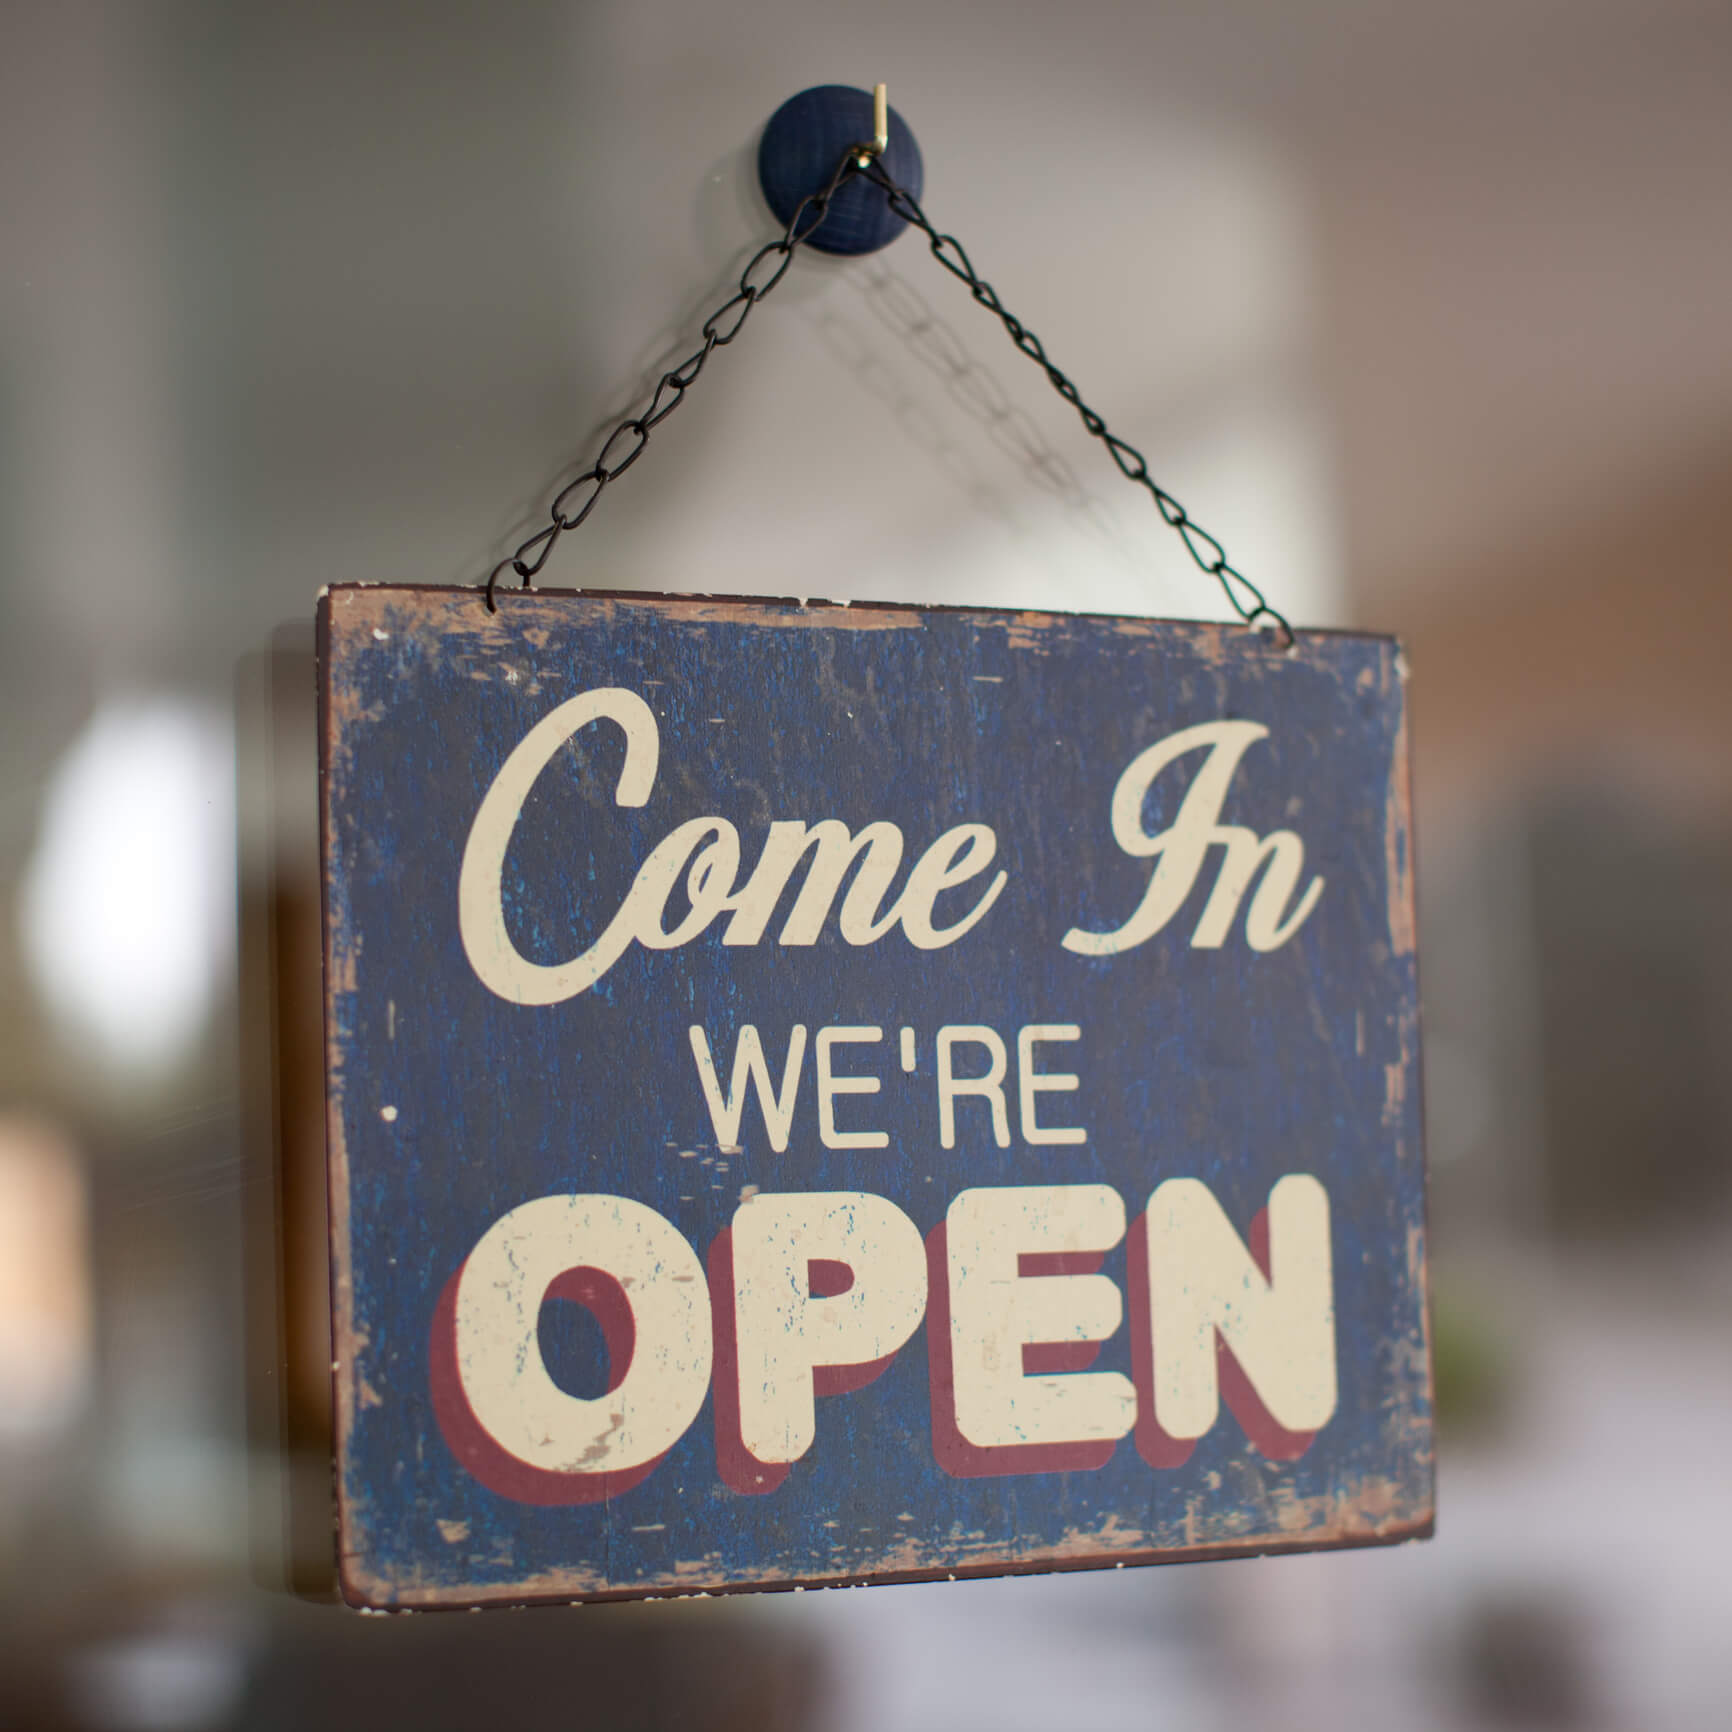 We're Open hanging sign